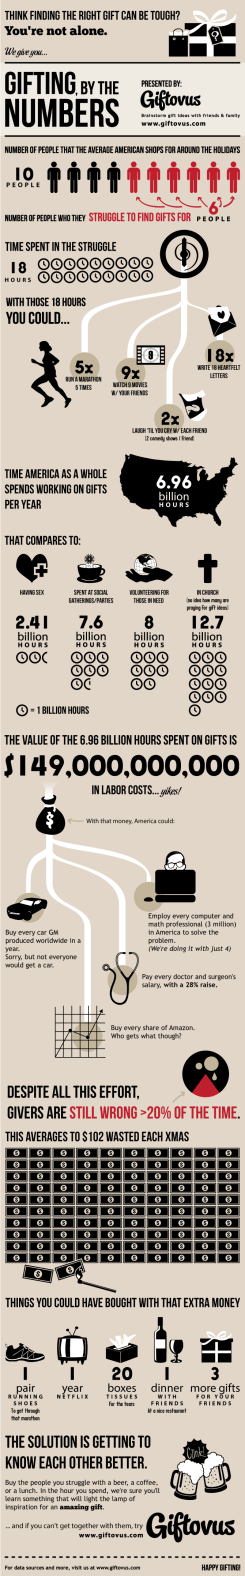 image from : http://visualoop.tumblr.com/post/66866095516/gift-giving-by-the-numbers